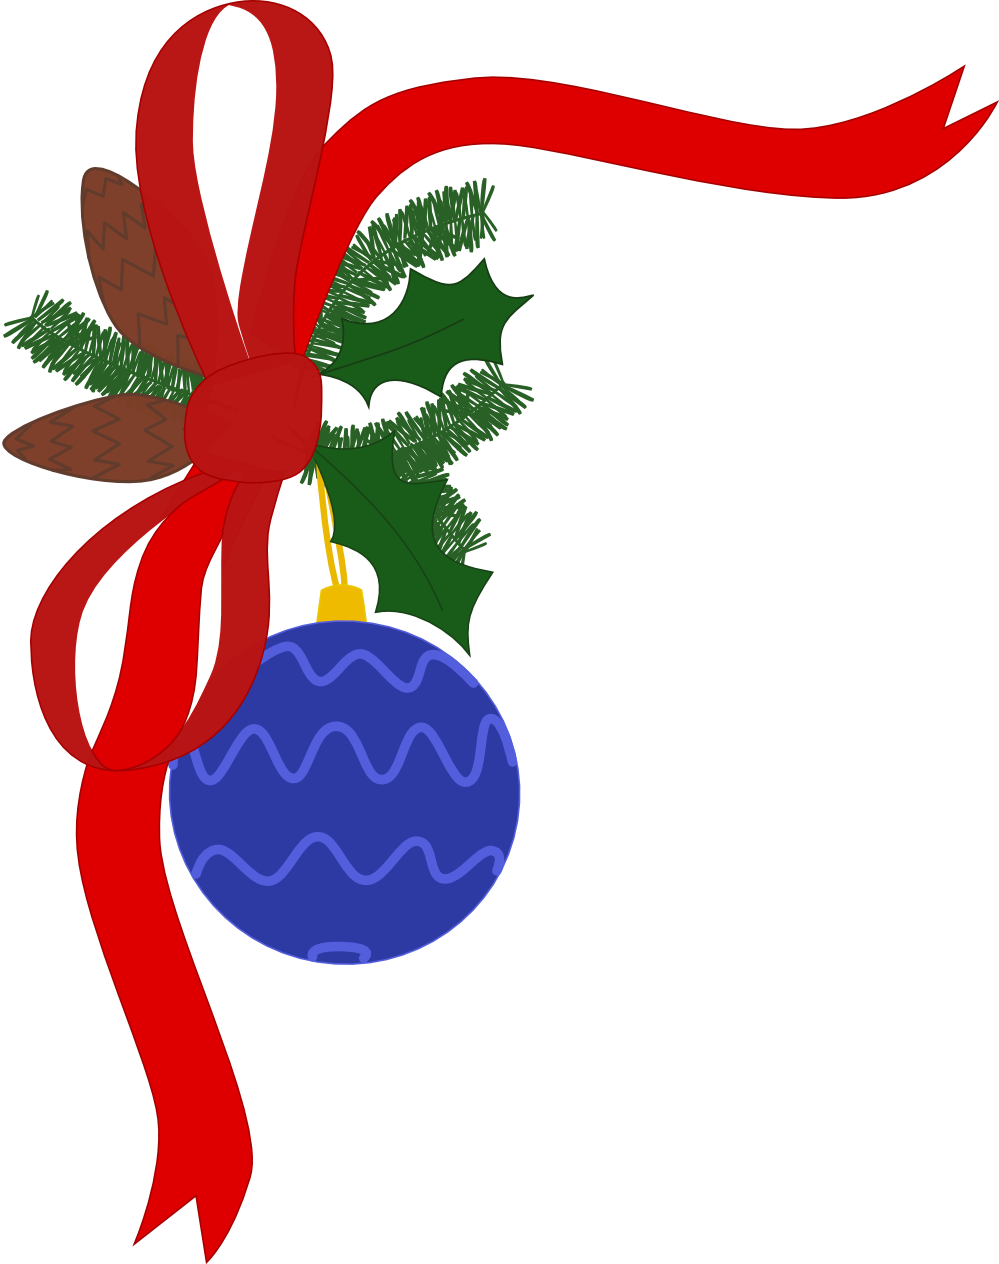 Holiday graphics clipart images gallery for free download.